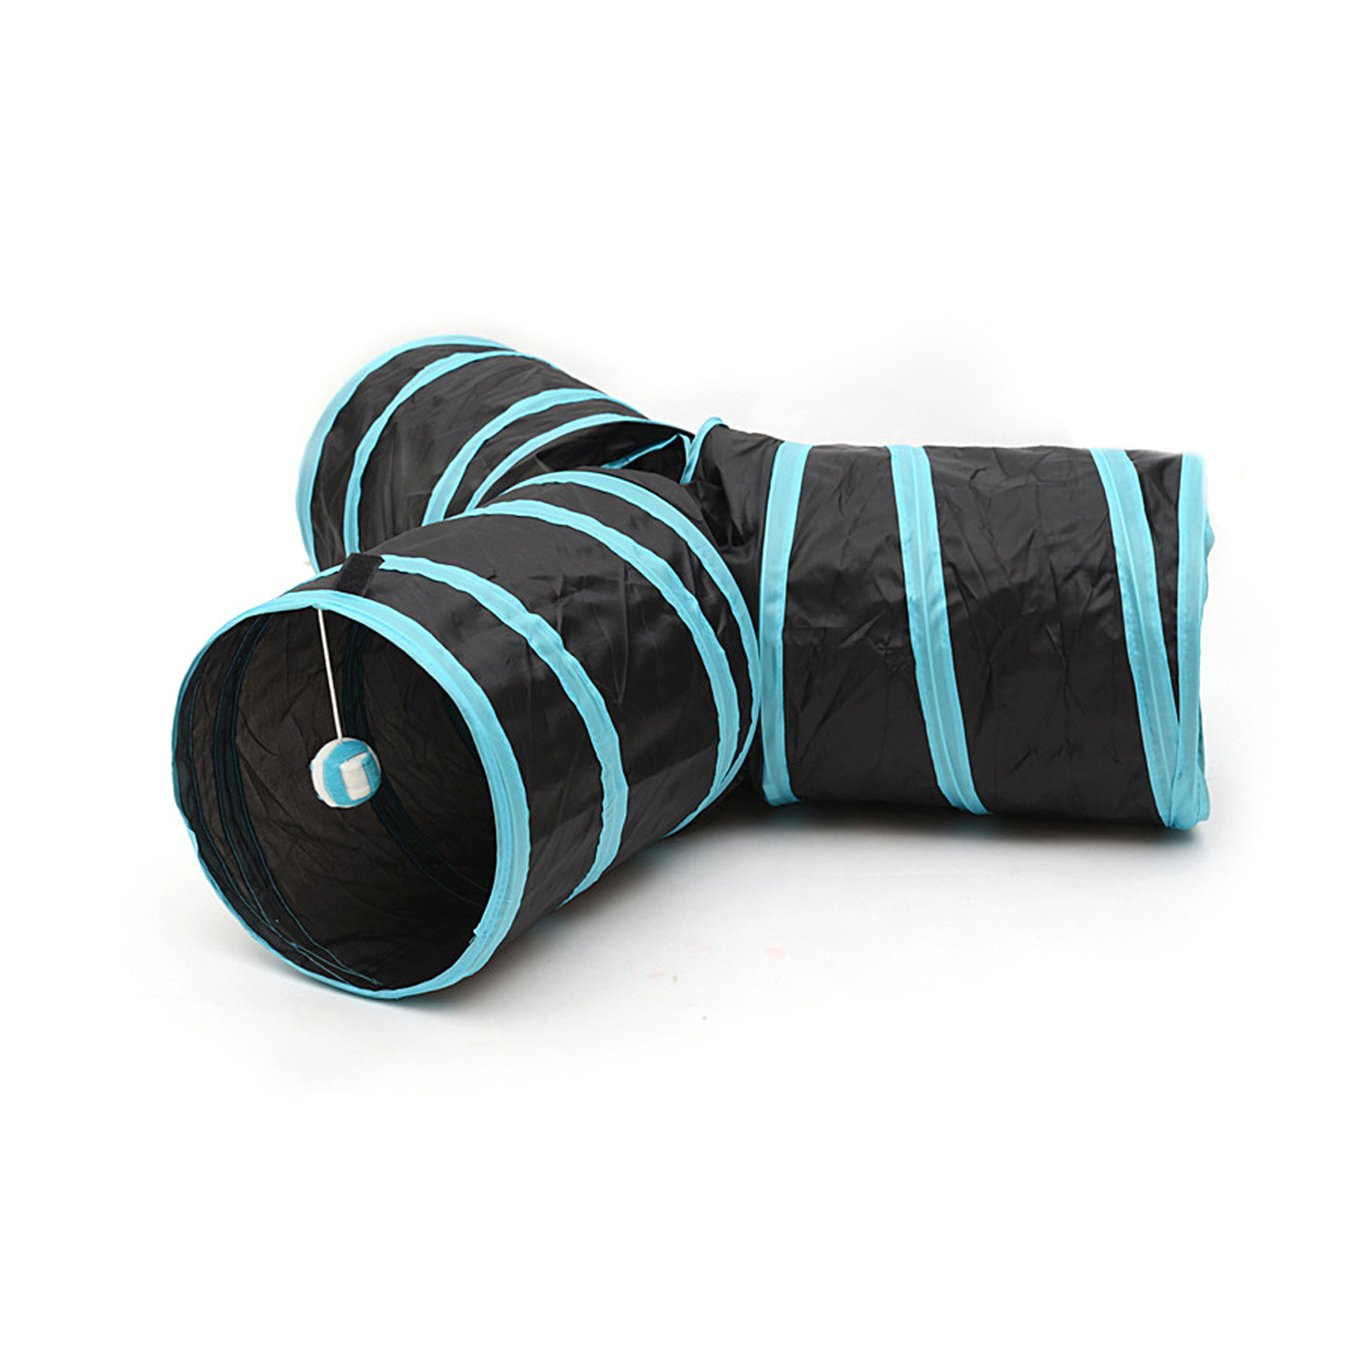 PAMPURR Pet Toy Tunnel 3 Way Cat Tunnel Collapsible with Ball for Cat for Puppy, Kitty, Rabbit